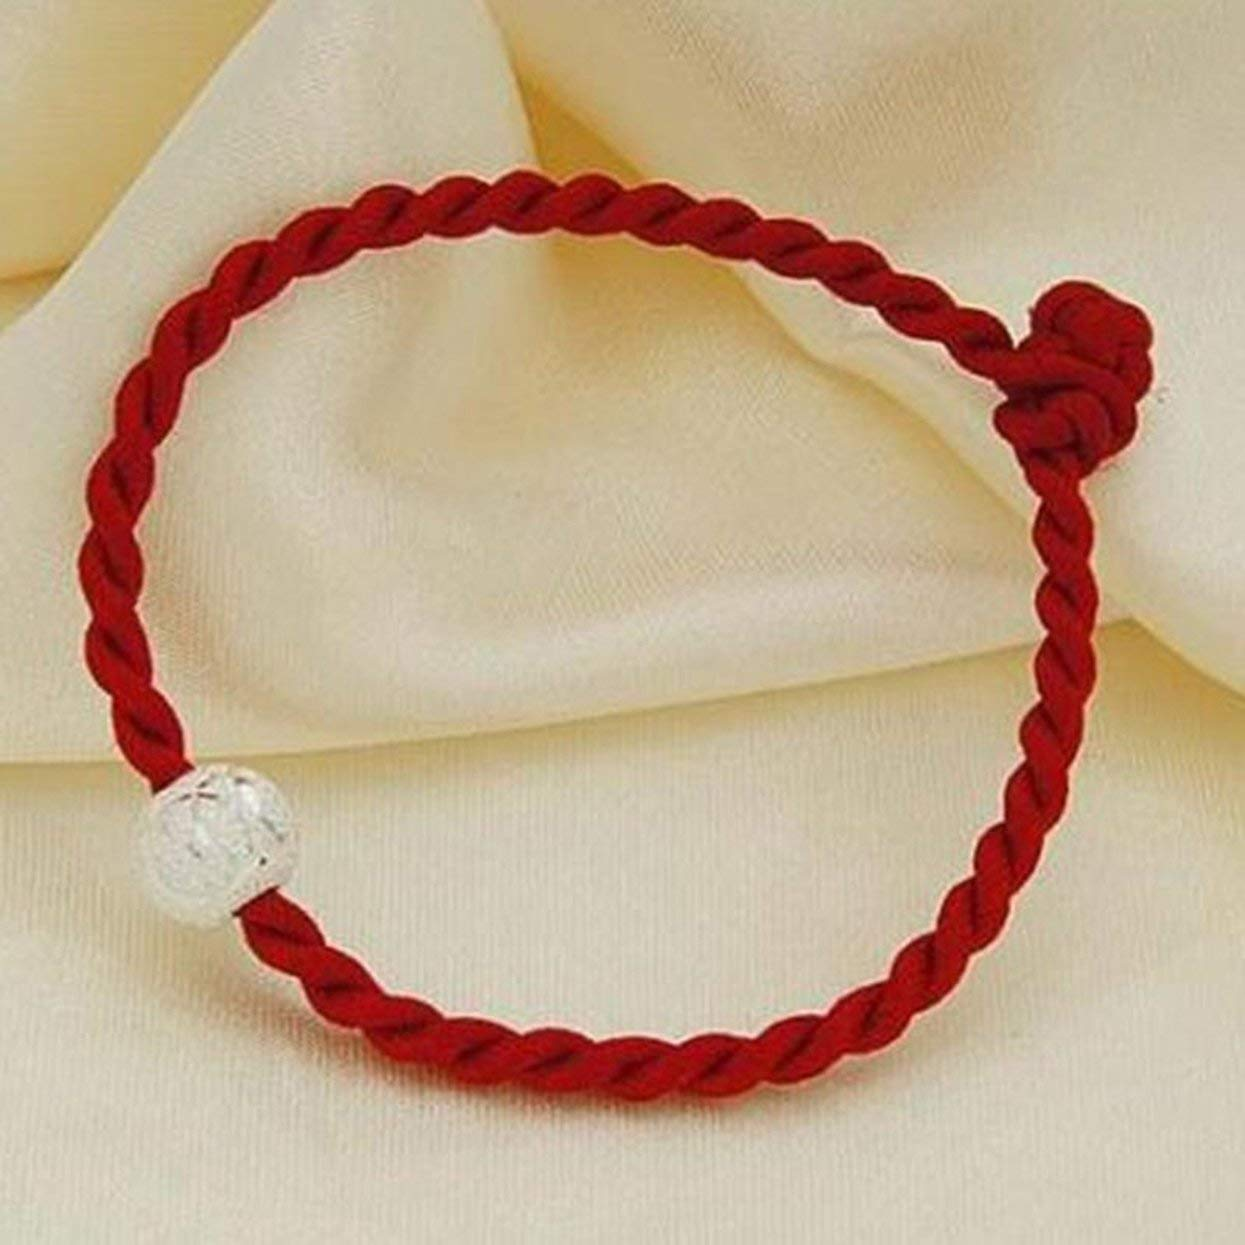 Tellaboull Chinese Feng Shui Lucky Red String Rope Hand-Woven Pieces with Silver Beads Red Rope Knit Bracelets Simple Fashion Bracelet